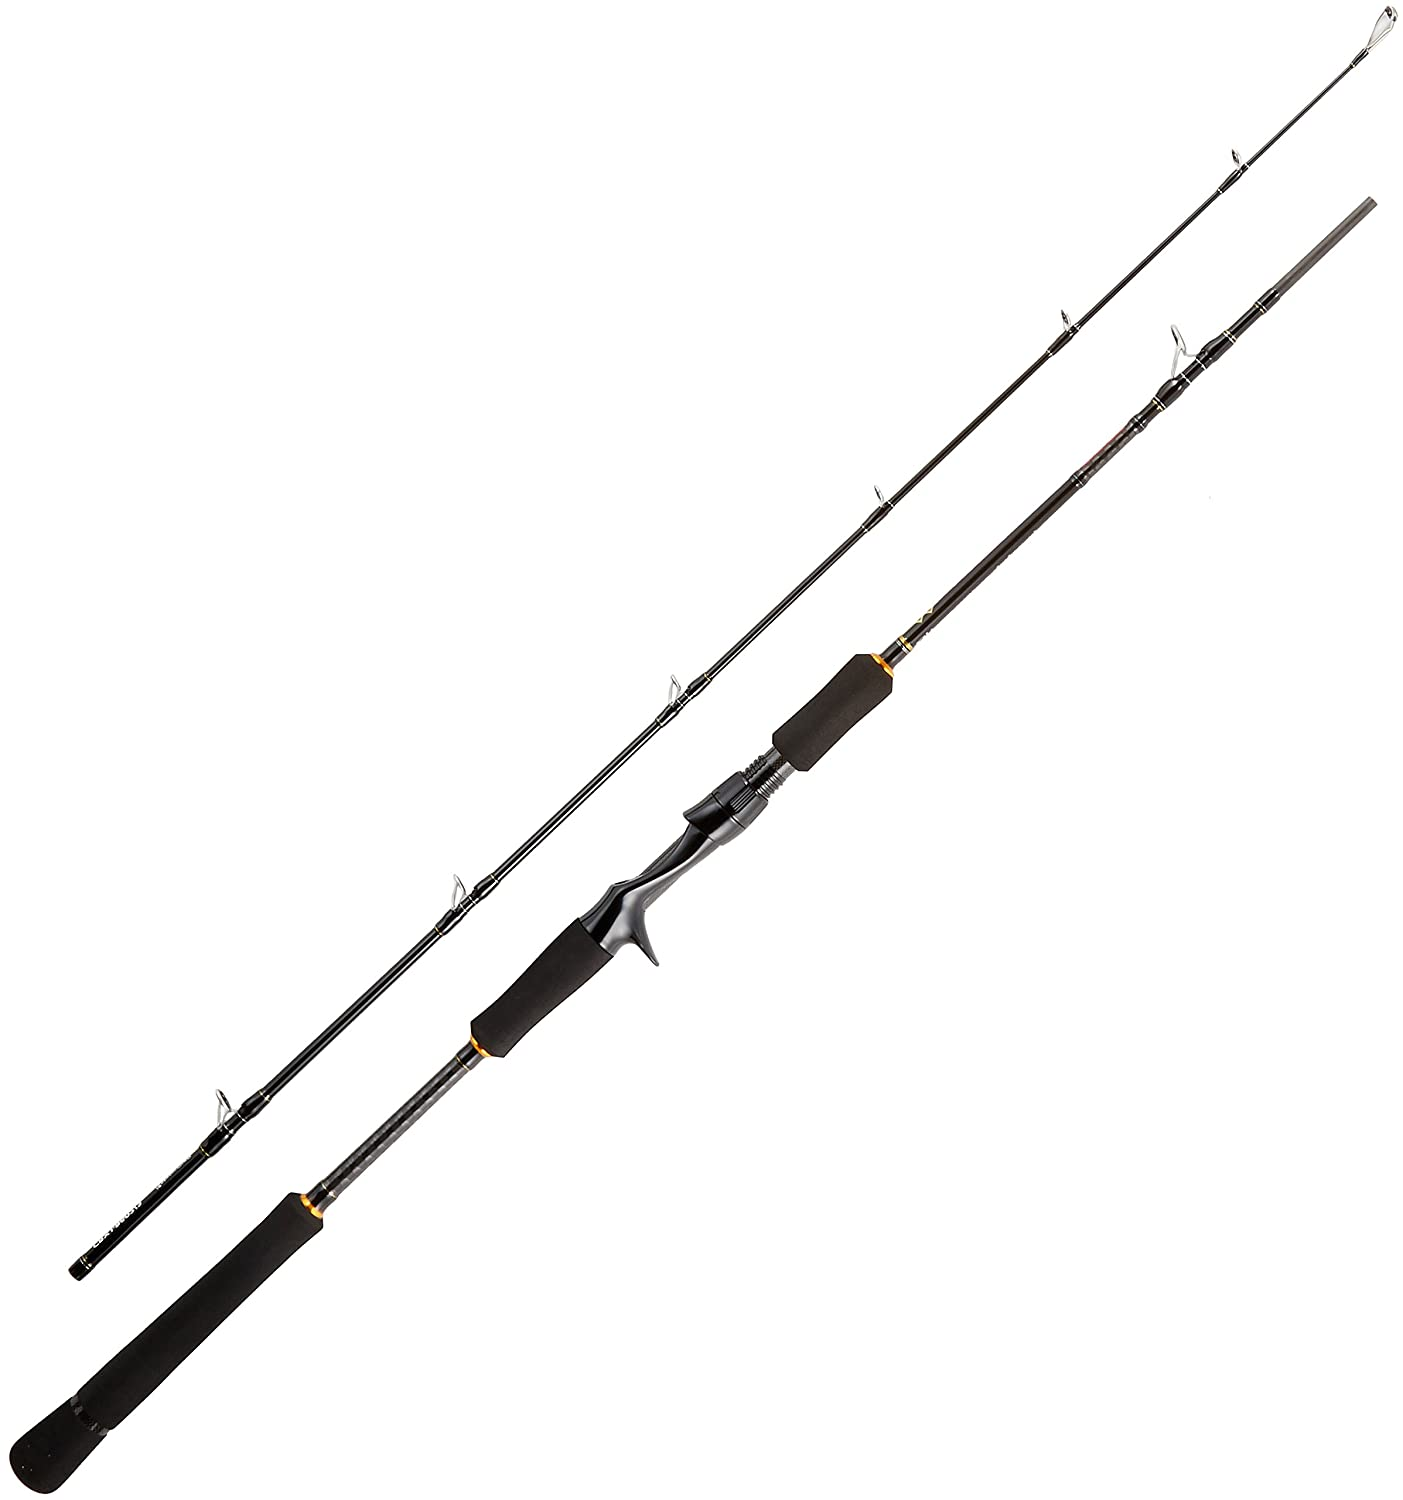 Major Craft crostage Jigging Crxj-B602 3 Baitcasting Rod Nuevo